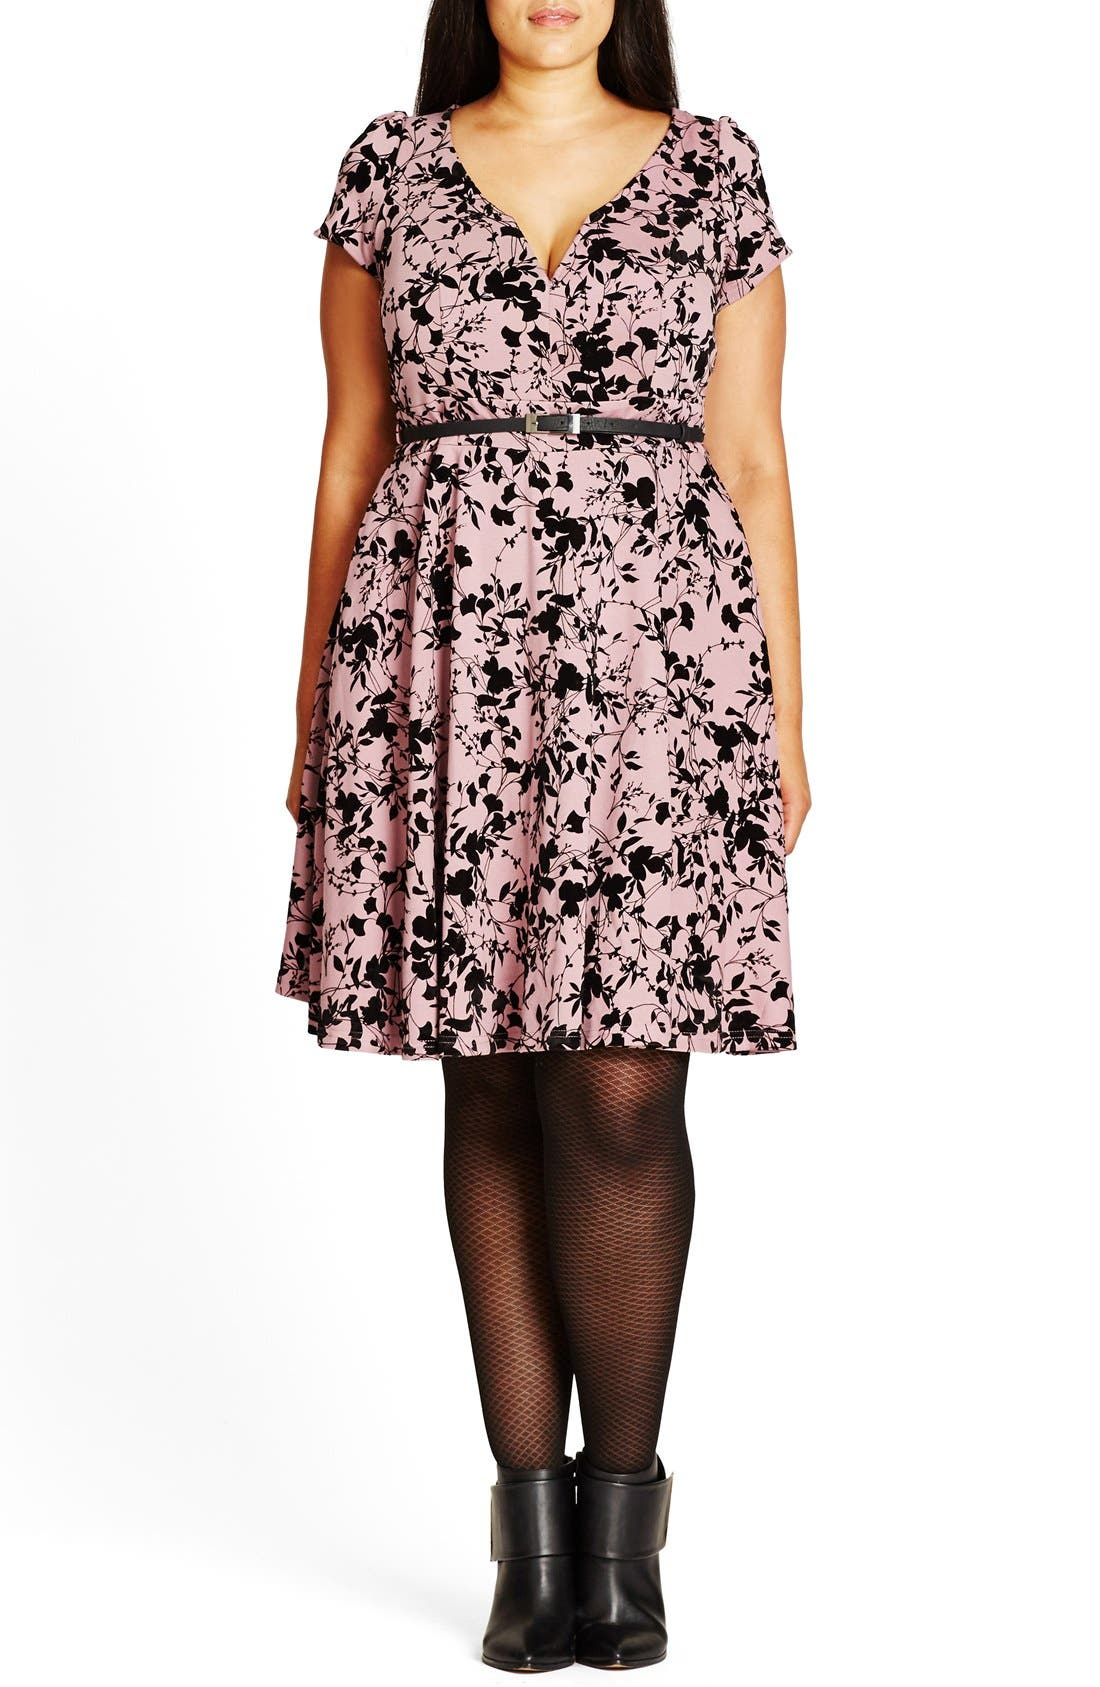 Alternate Image 1 Selected - City Chic Rose Beauty Belted Fit & Flare Dress (Plus Size)